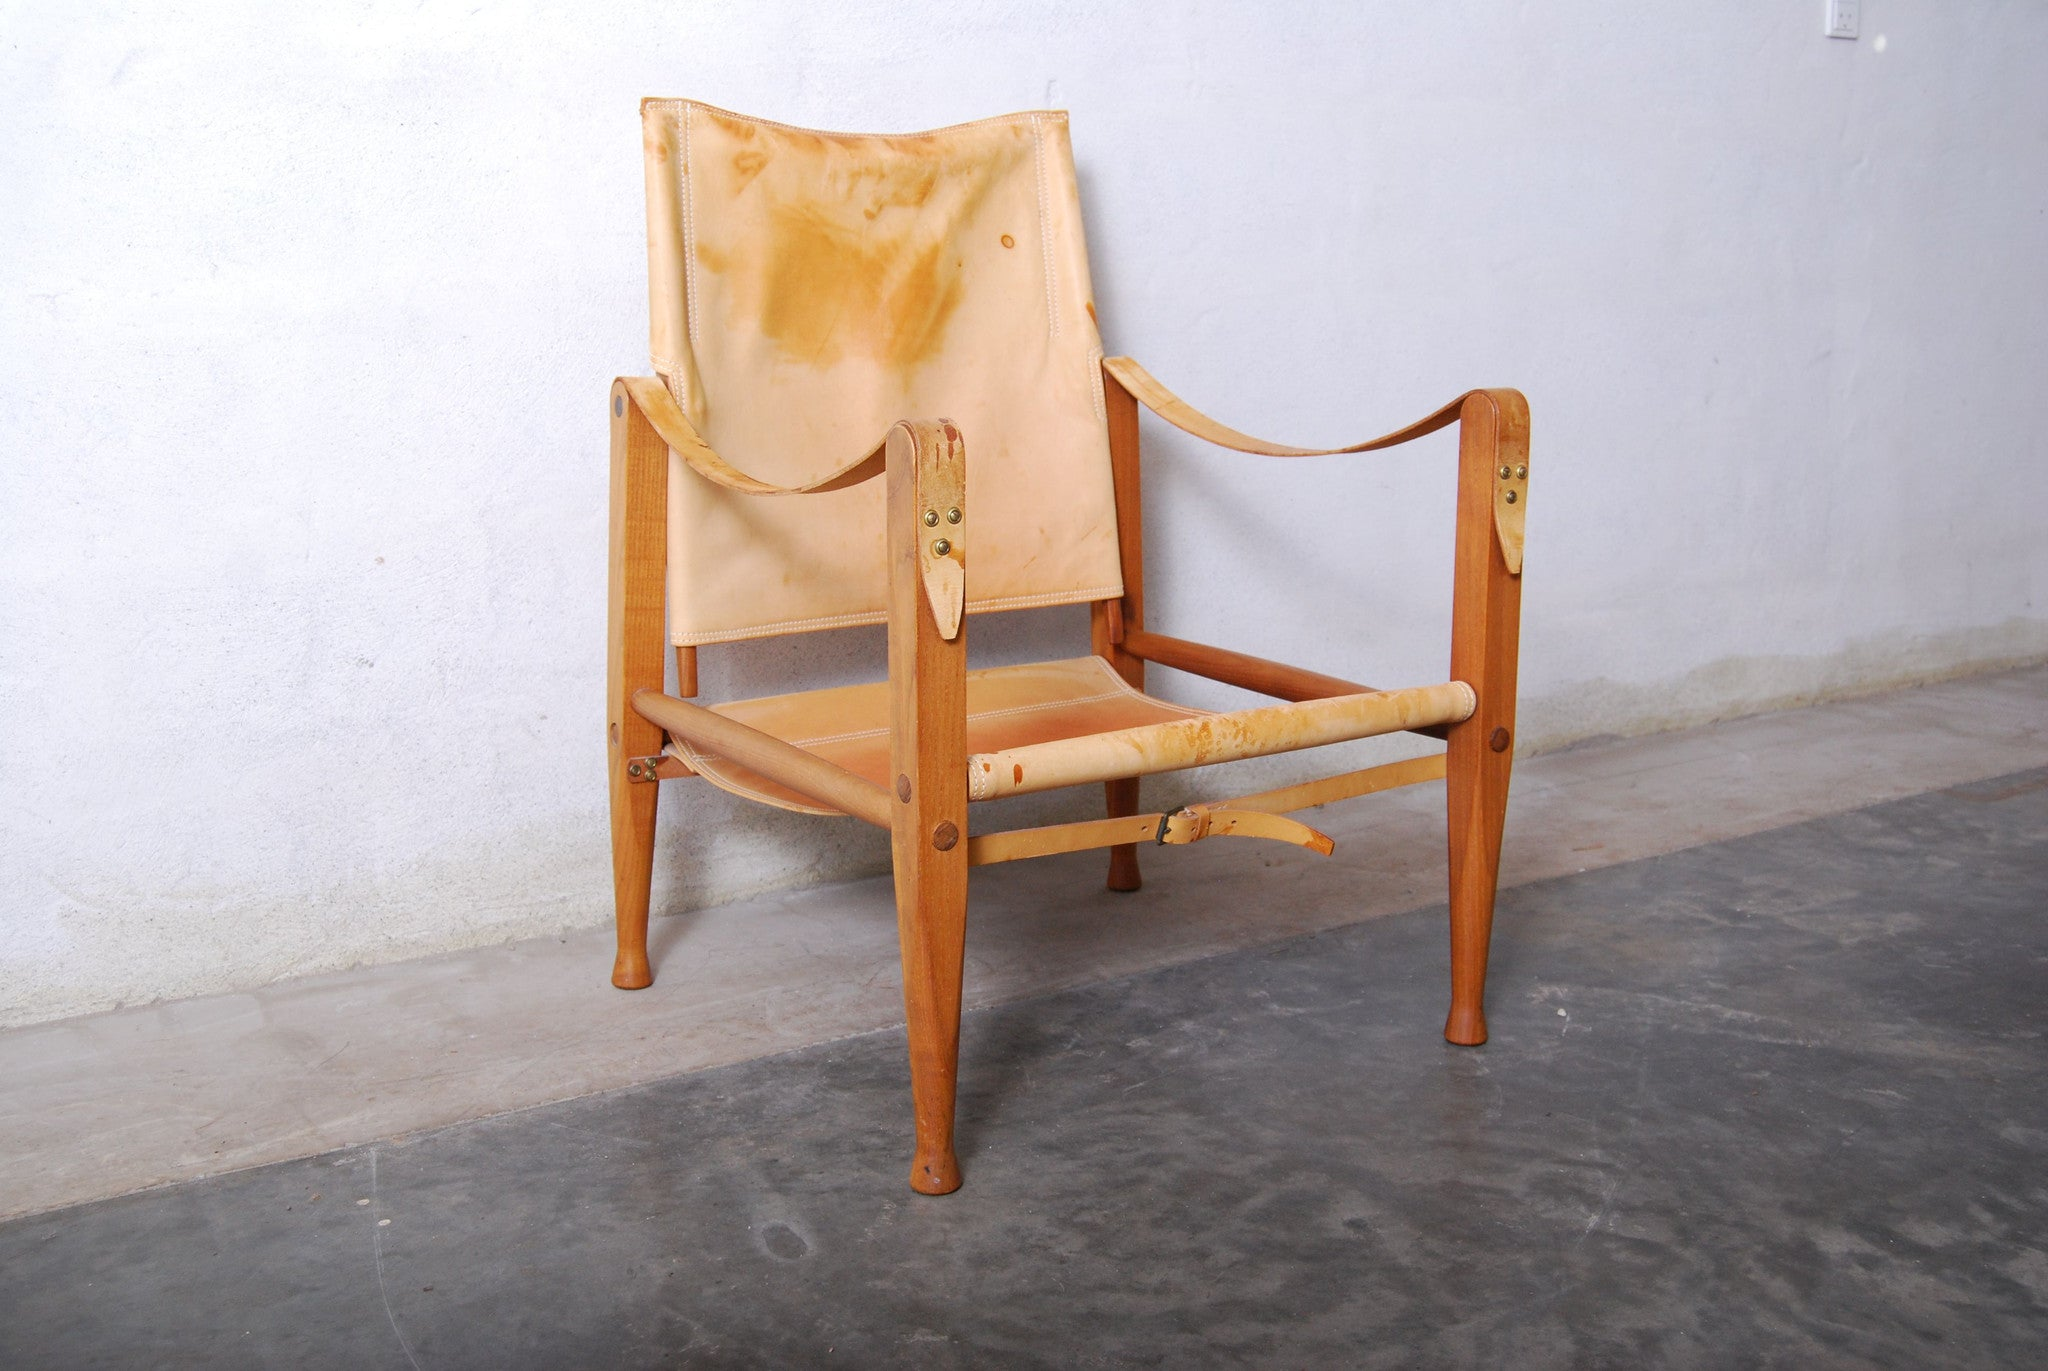 Chase & Sorensen Pair of safari chairs by Kaare Klint